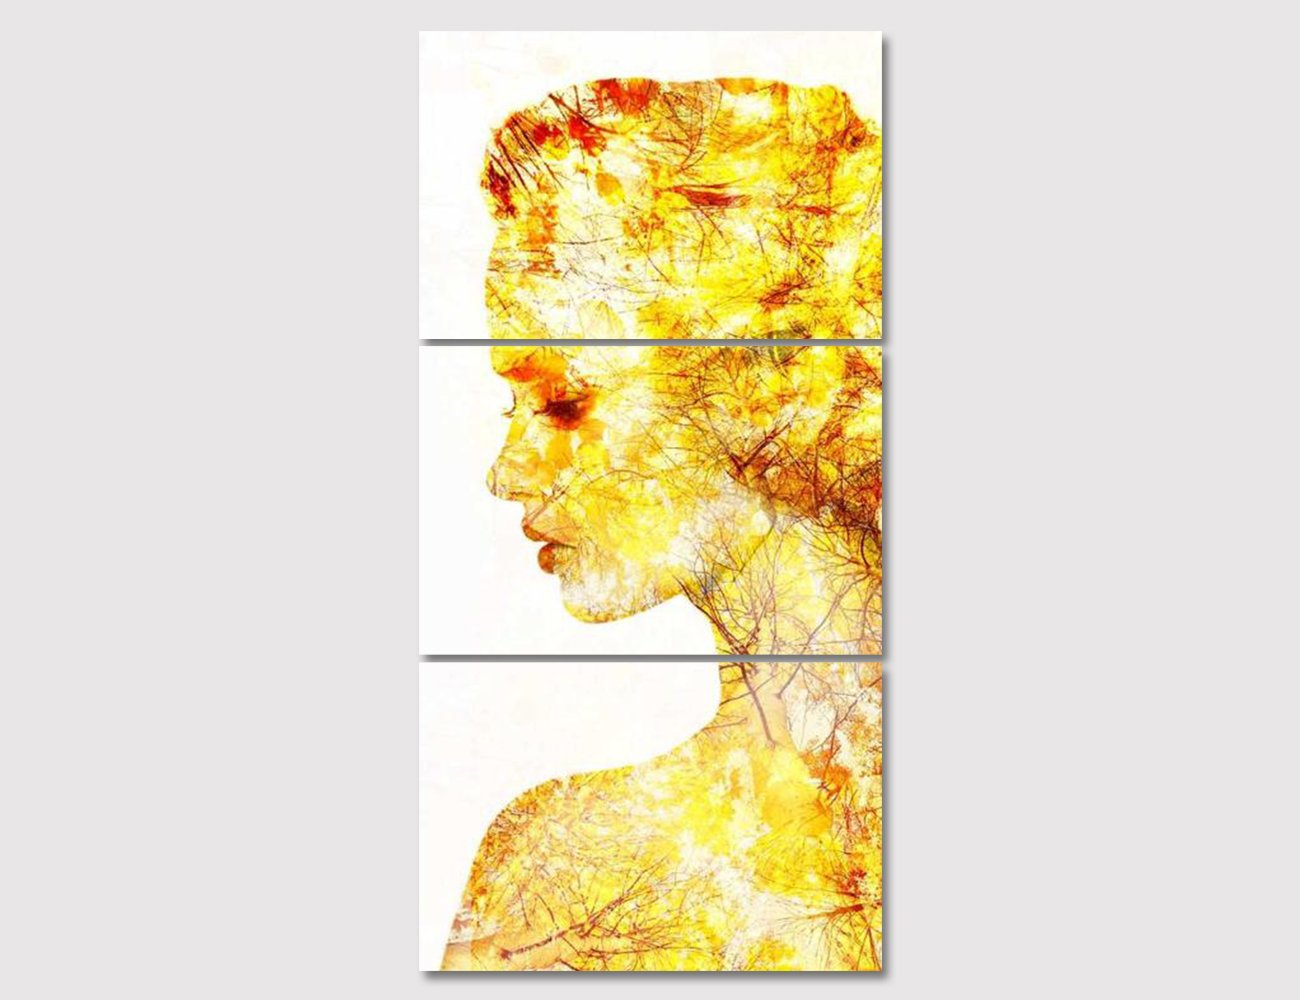 Amazon.com: Simple Style Wall Art Abstract Elegance Woman Painting ...